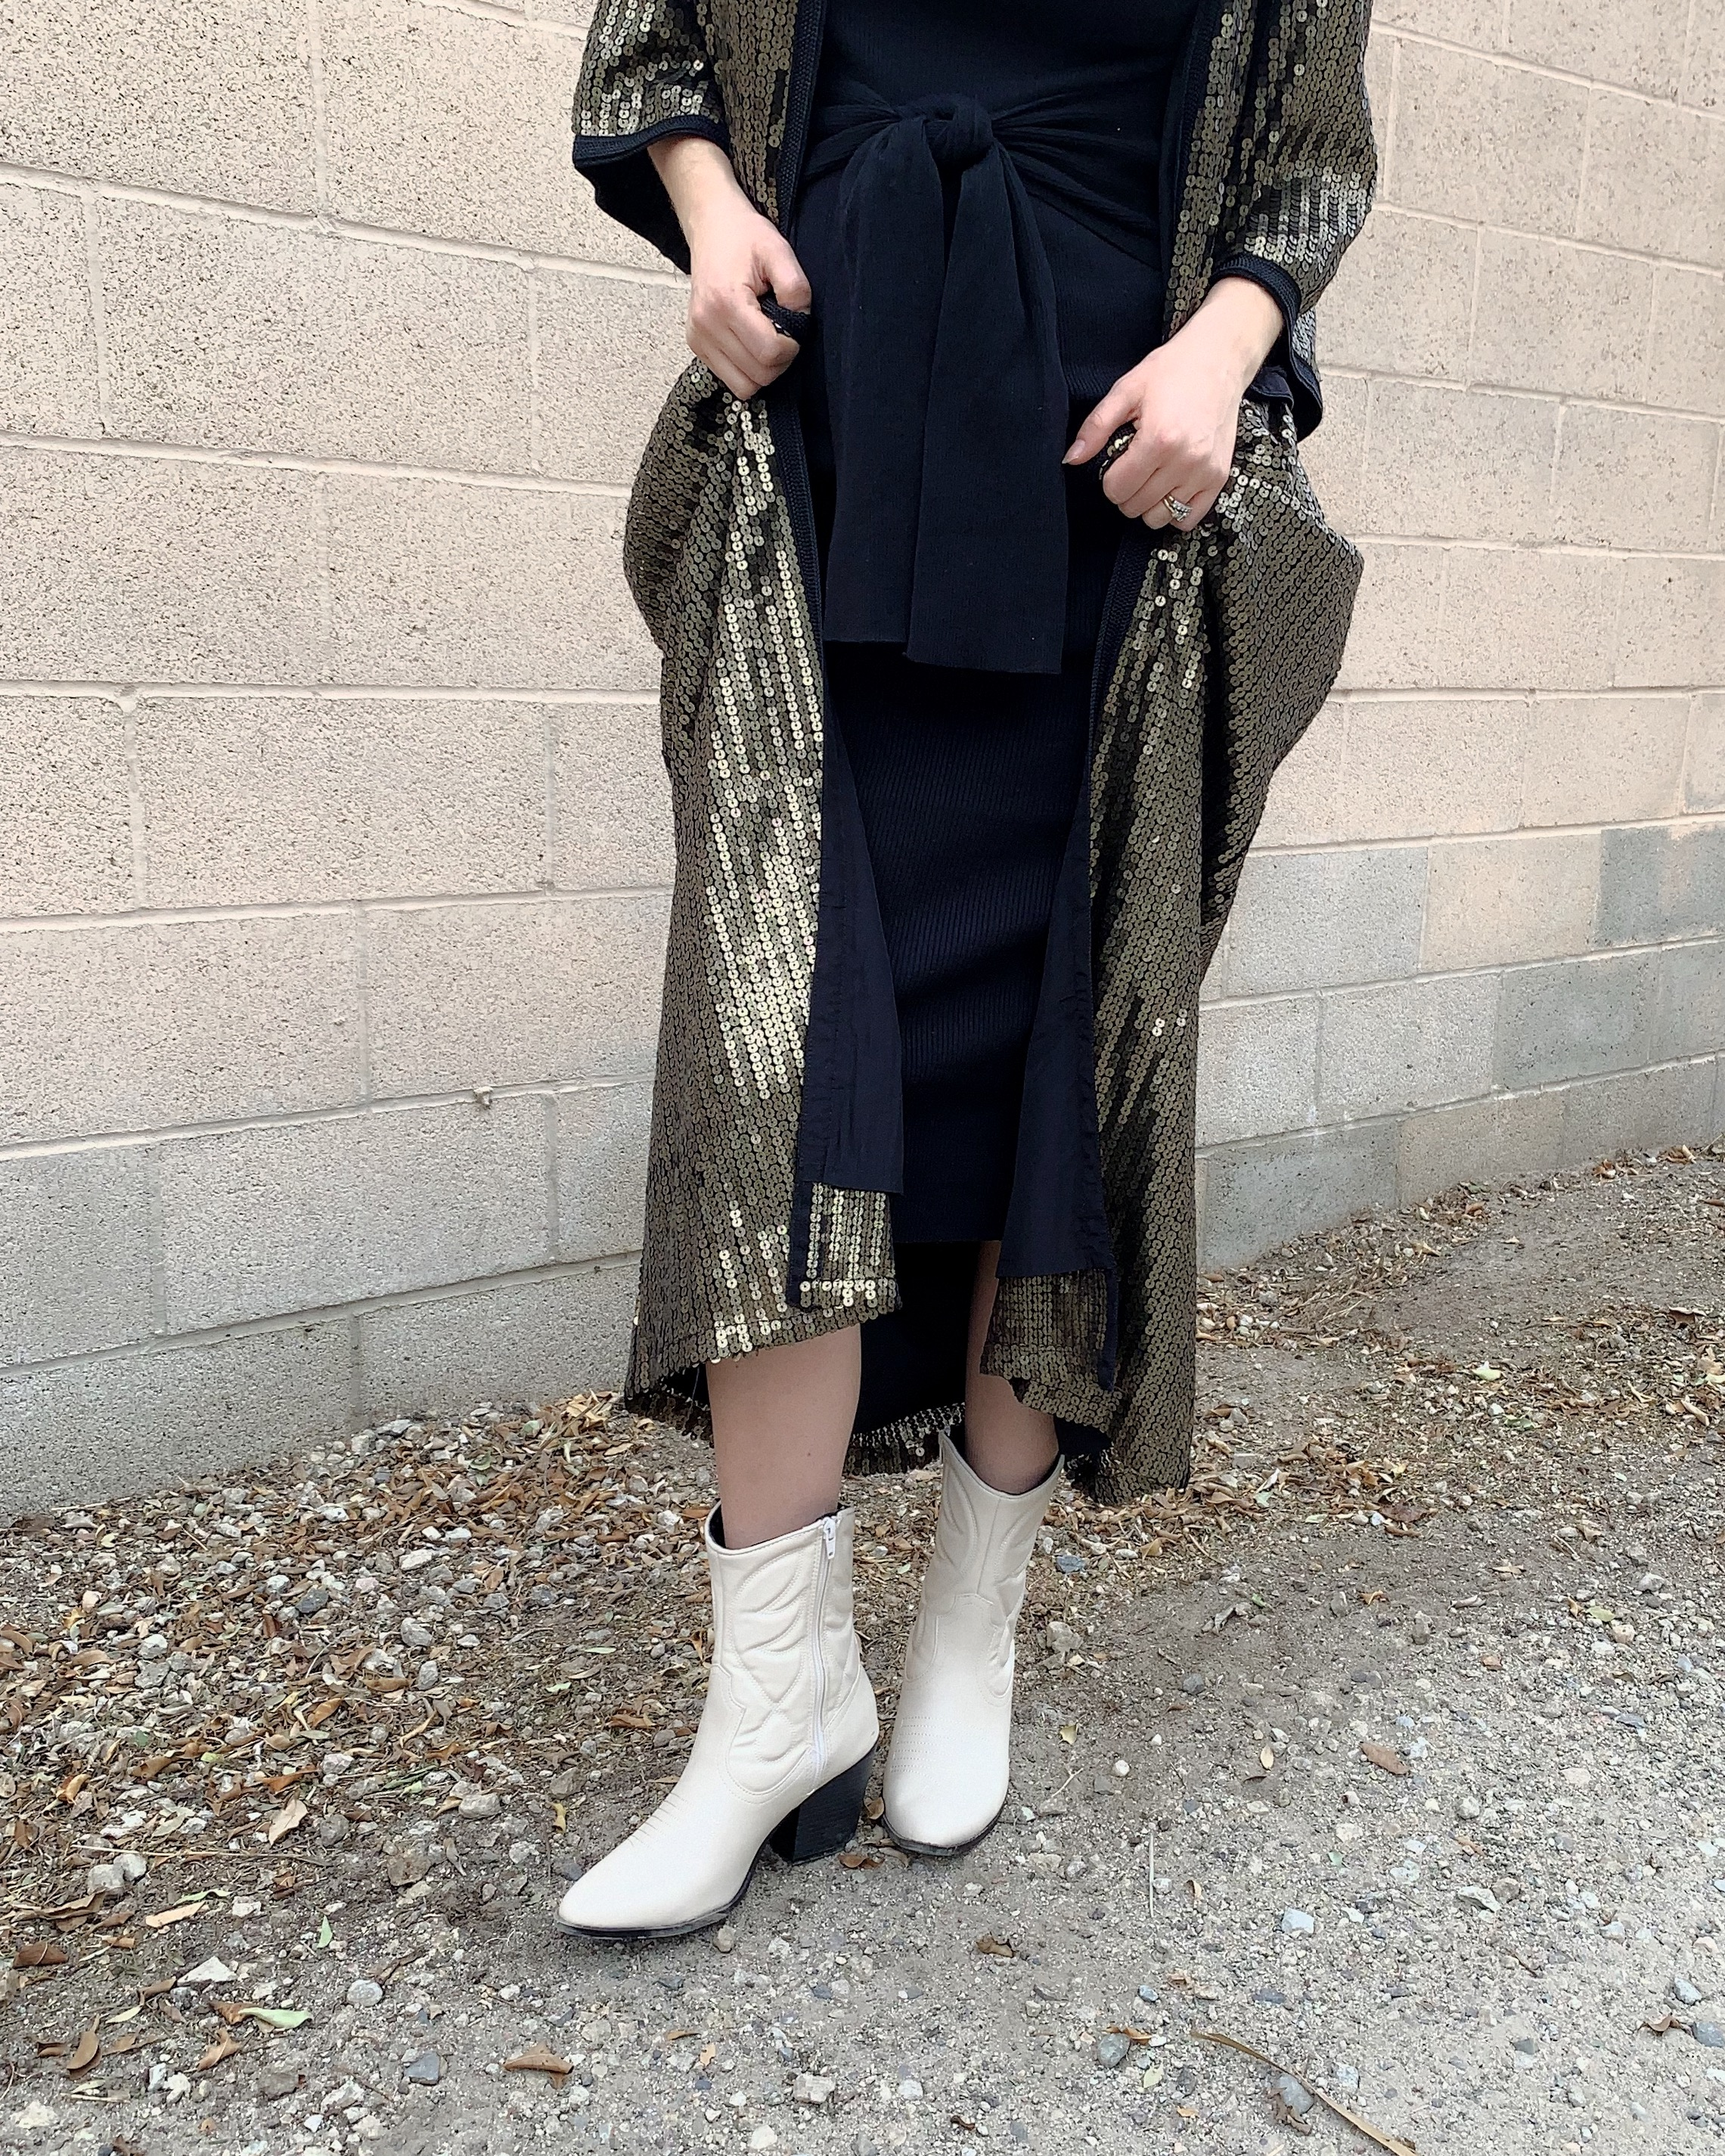 The Western Trend for Under $100